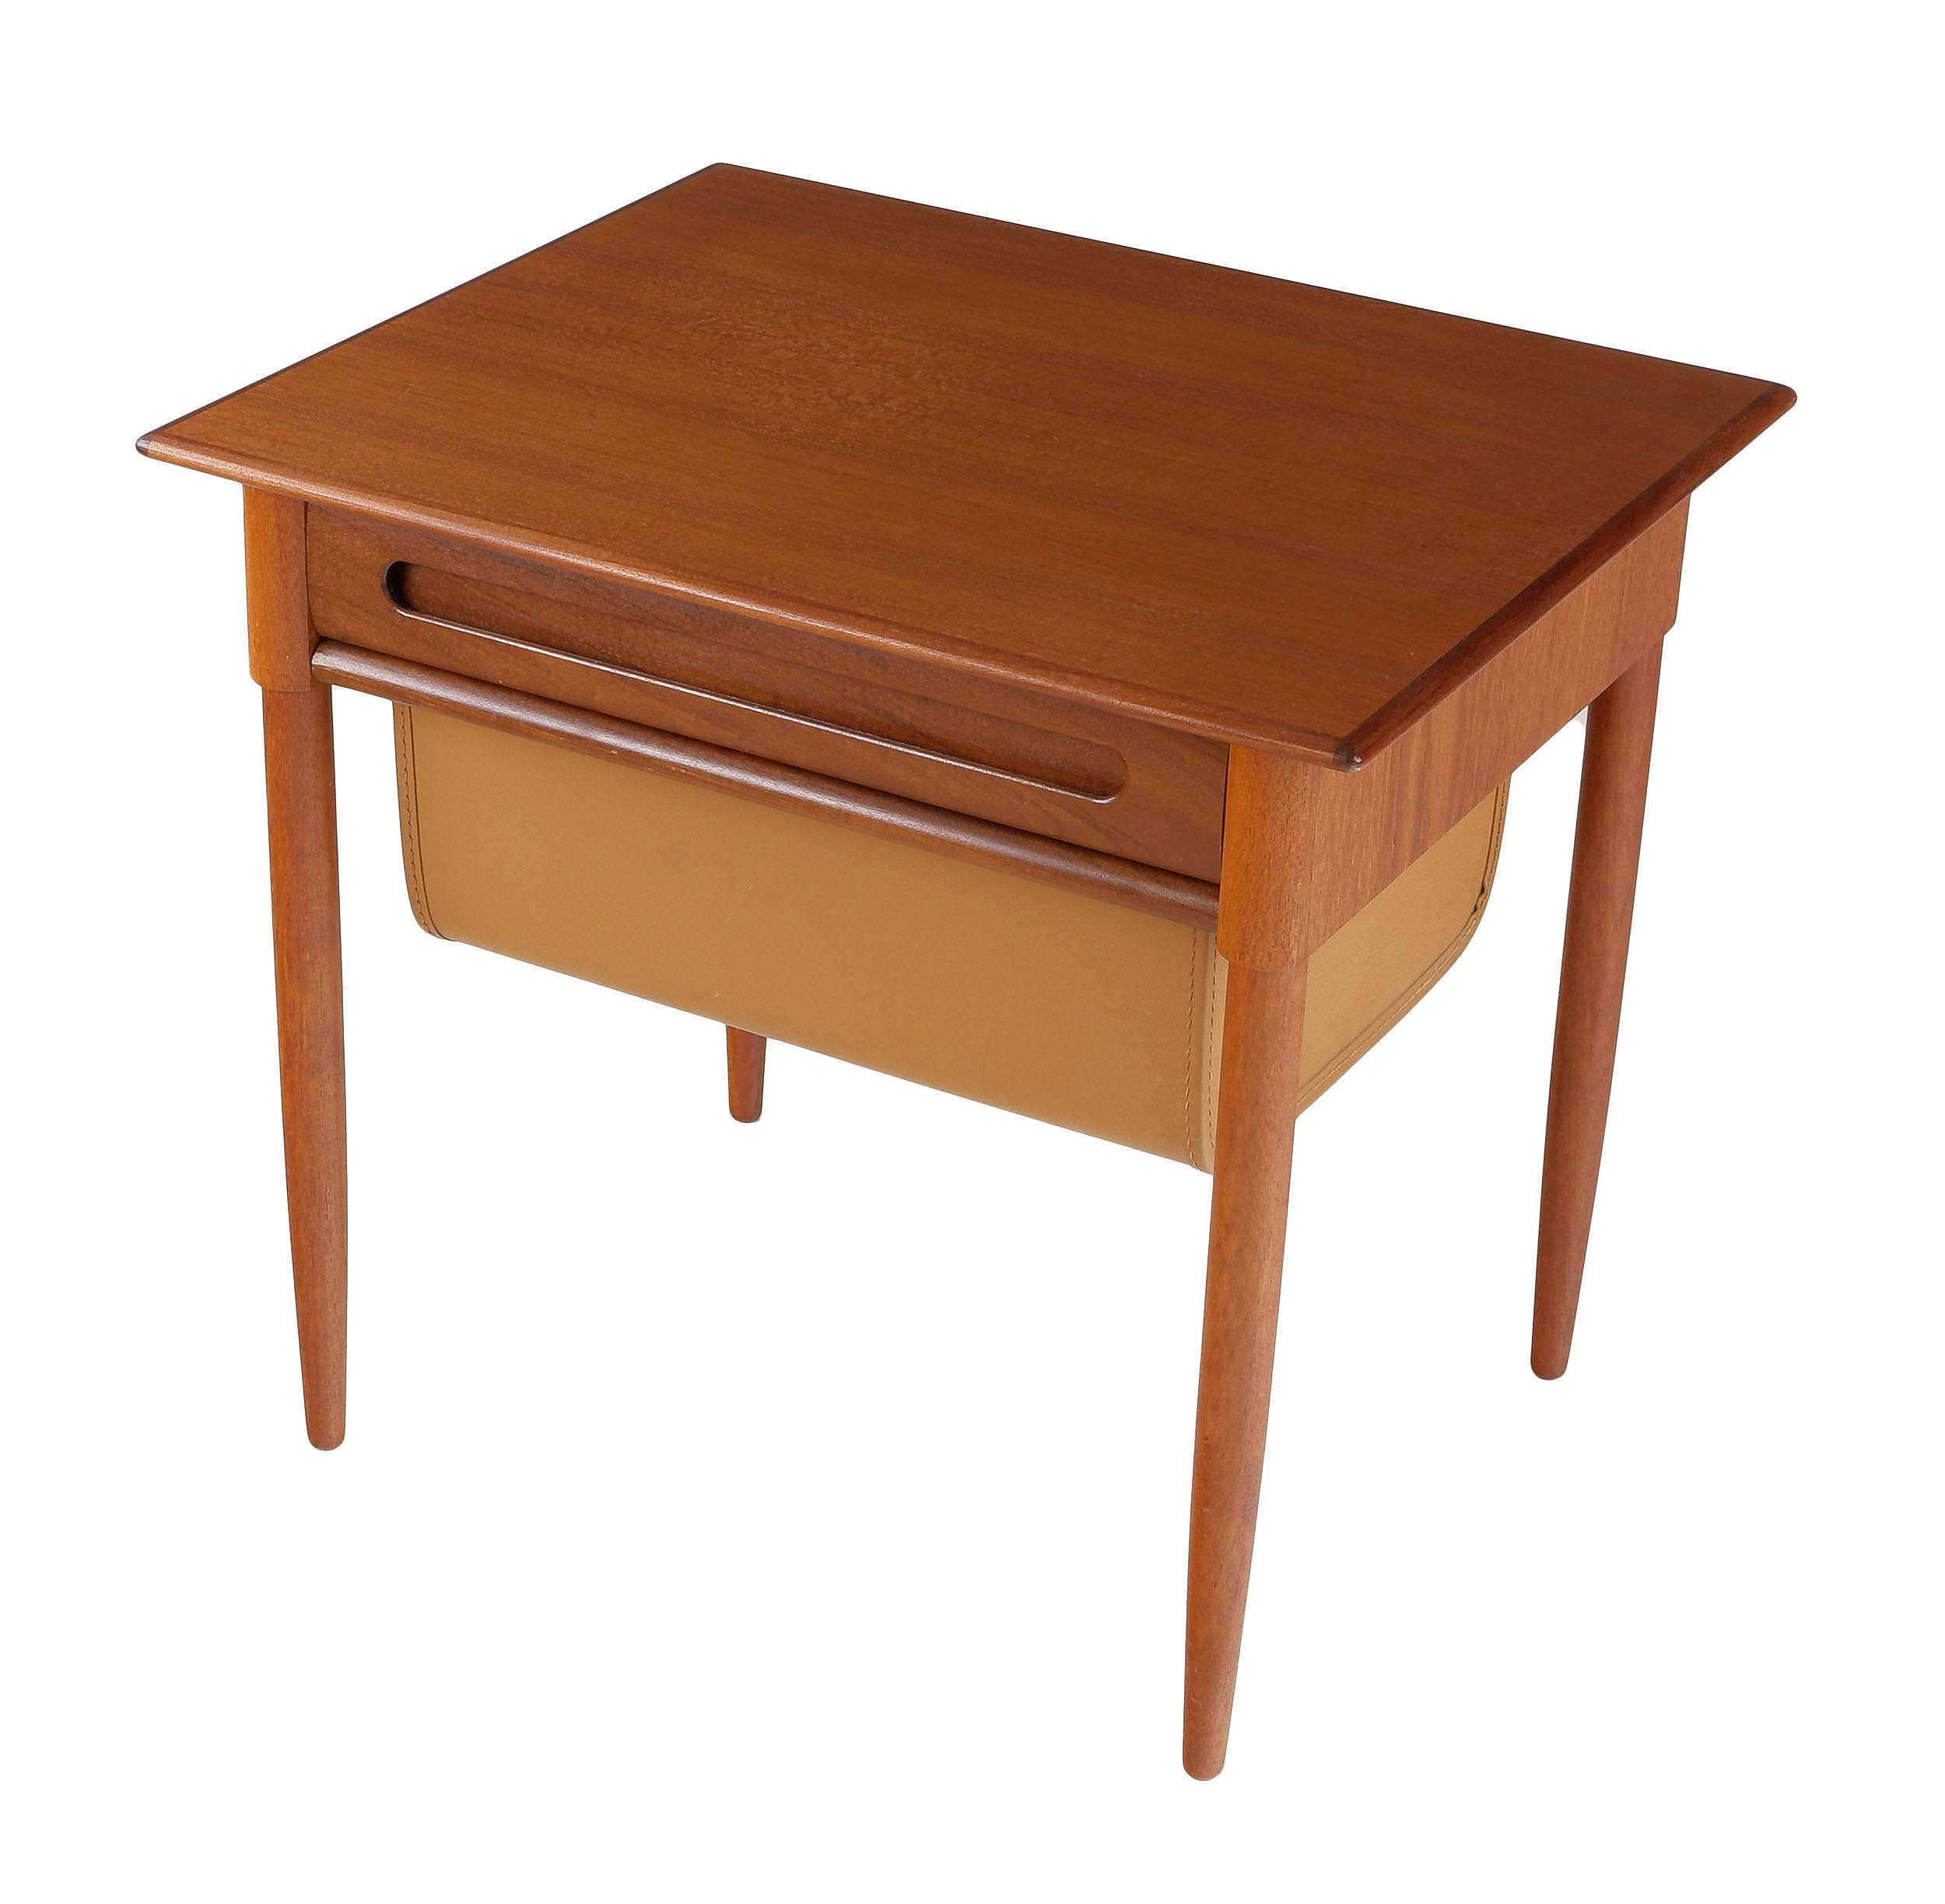 'Danish Teak Bedside Table with Leather Upholstered Drawer'